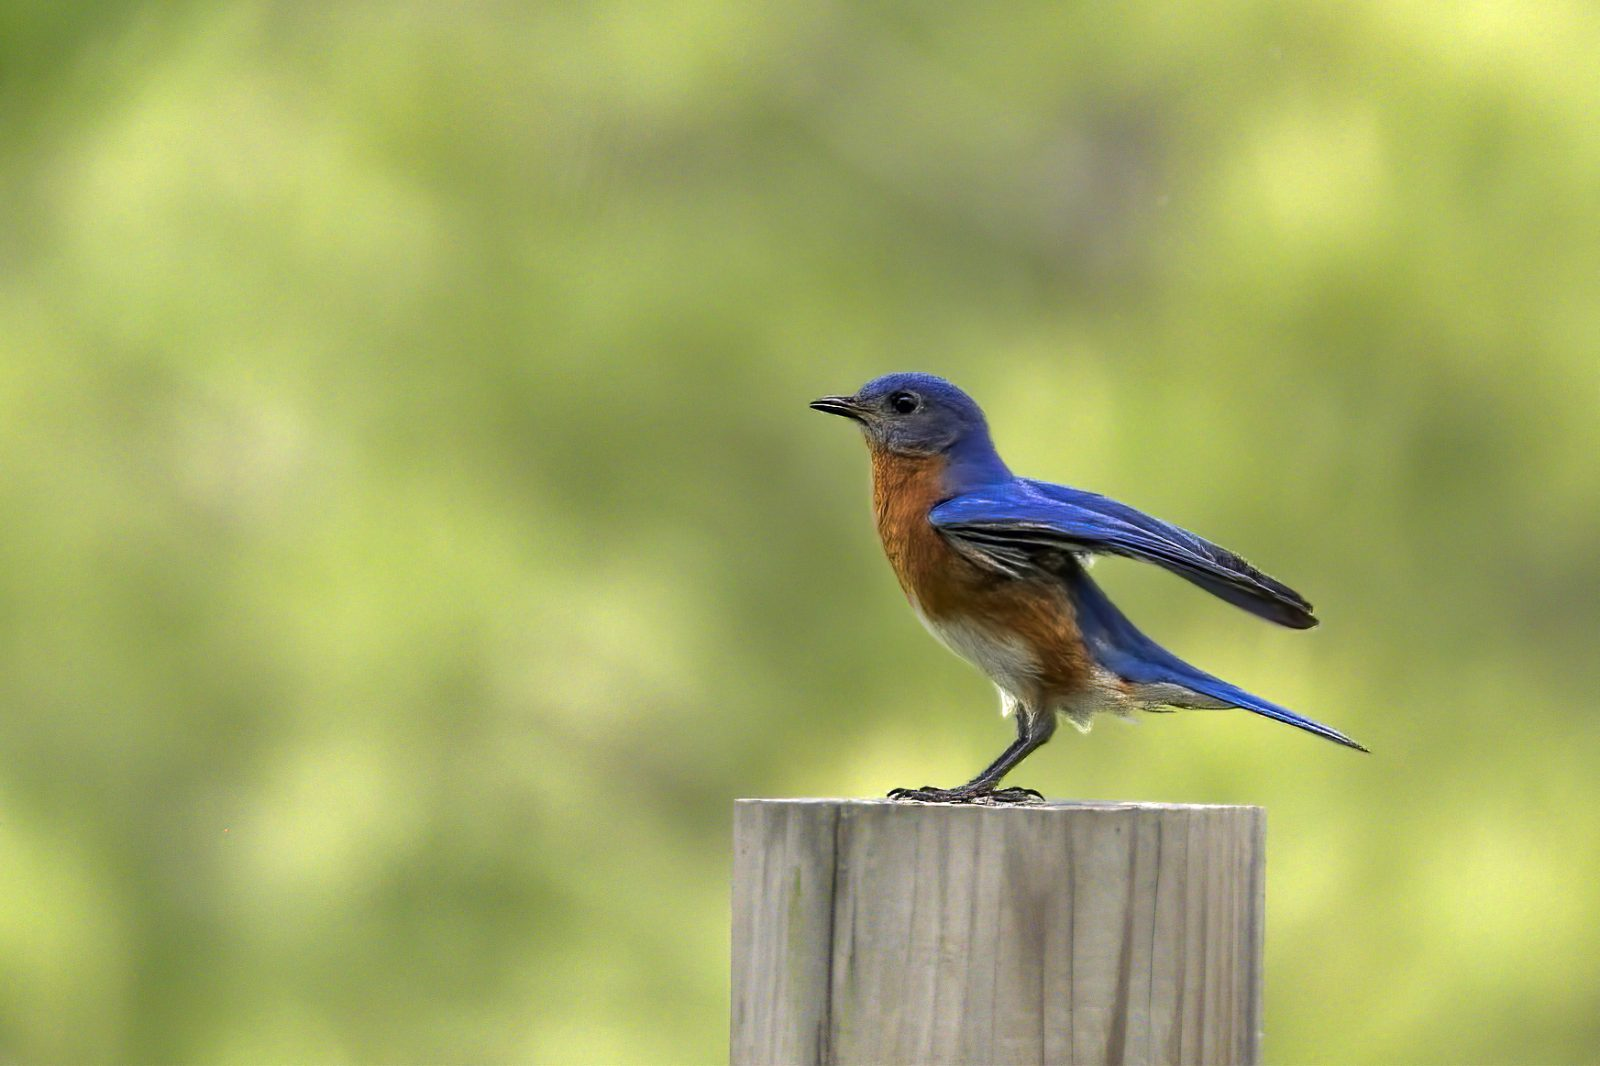 Bluebird ready to launch